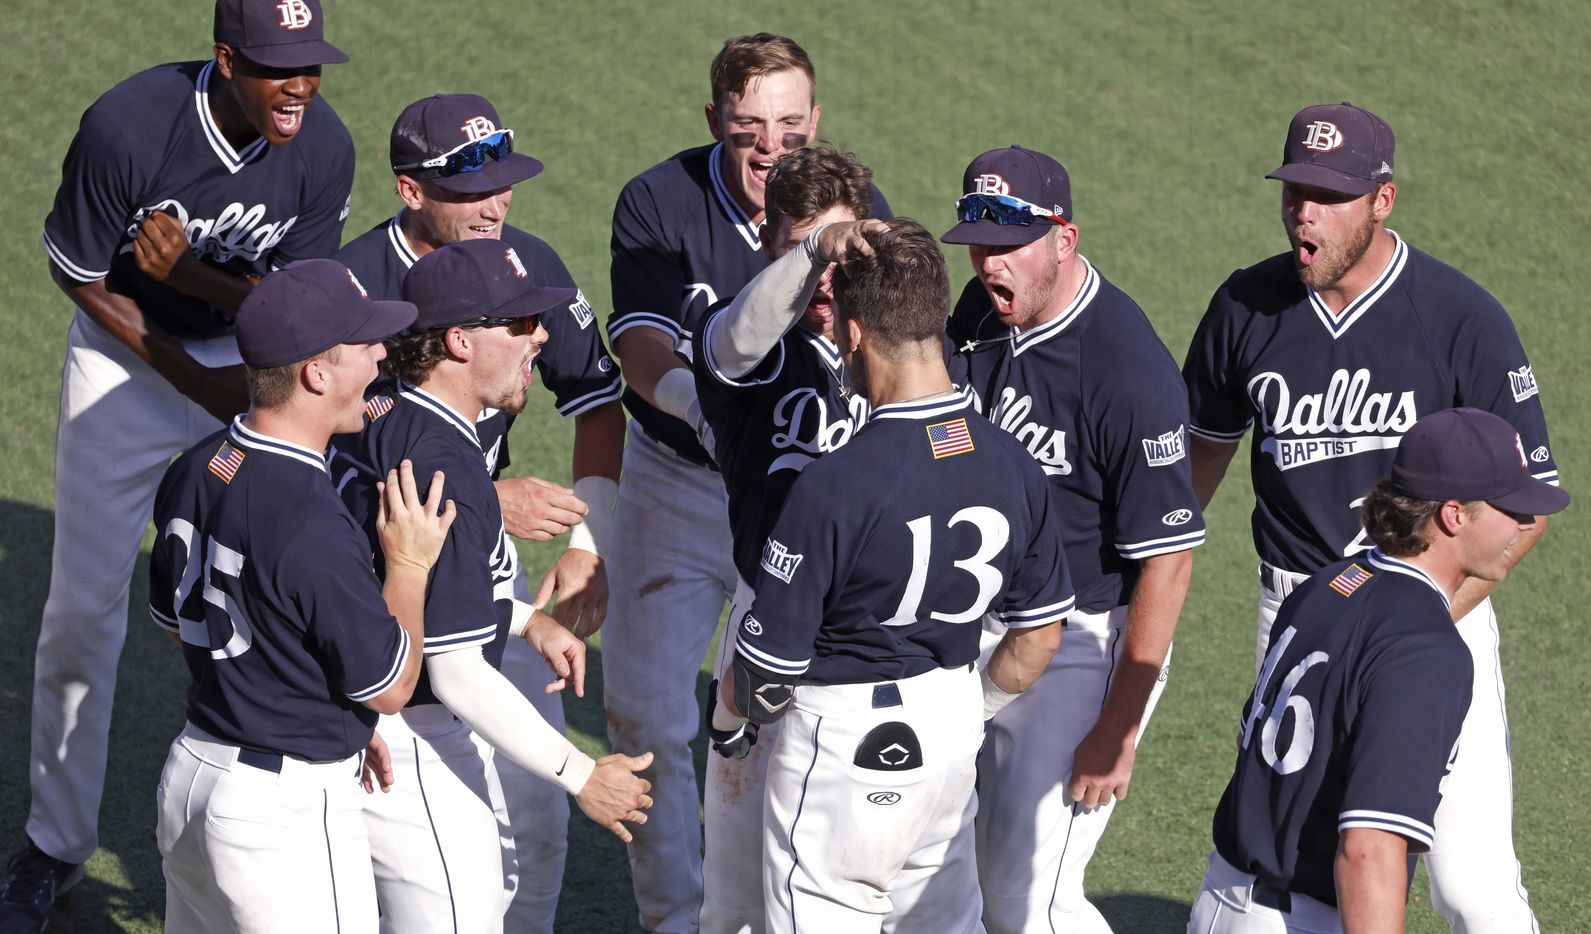 Dallas Baptist infielder Andrew Benefield (13) celebrates with teammates after hitting a grand slam home run against Oregon St. in the seventh inning during the NCAA Division I Baseball Regional Championship game in Fort Worth, Texas on June 7, 2021. (Ron Jenkins/Special Contributor)